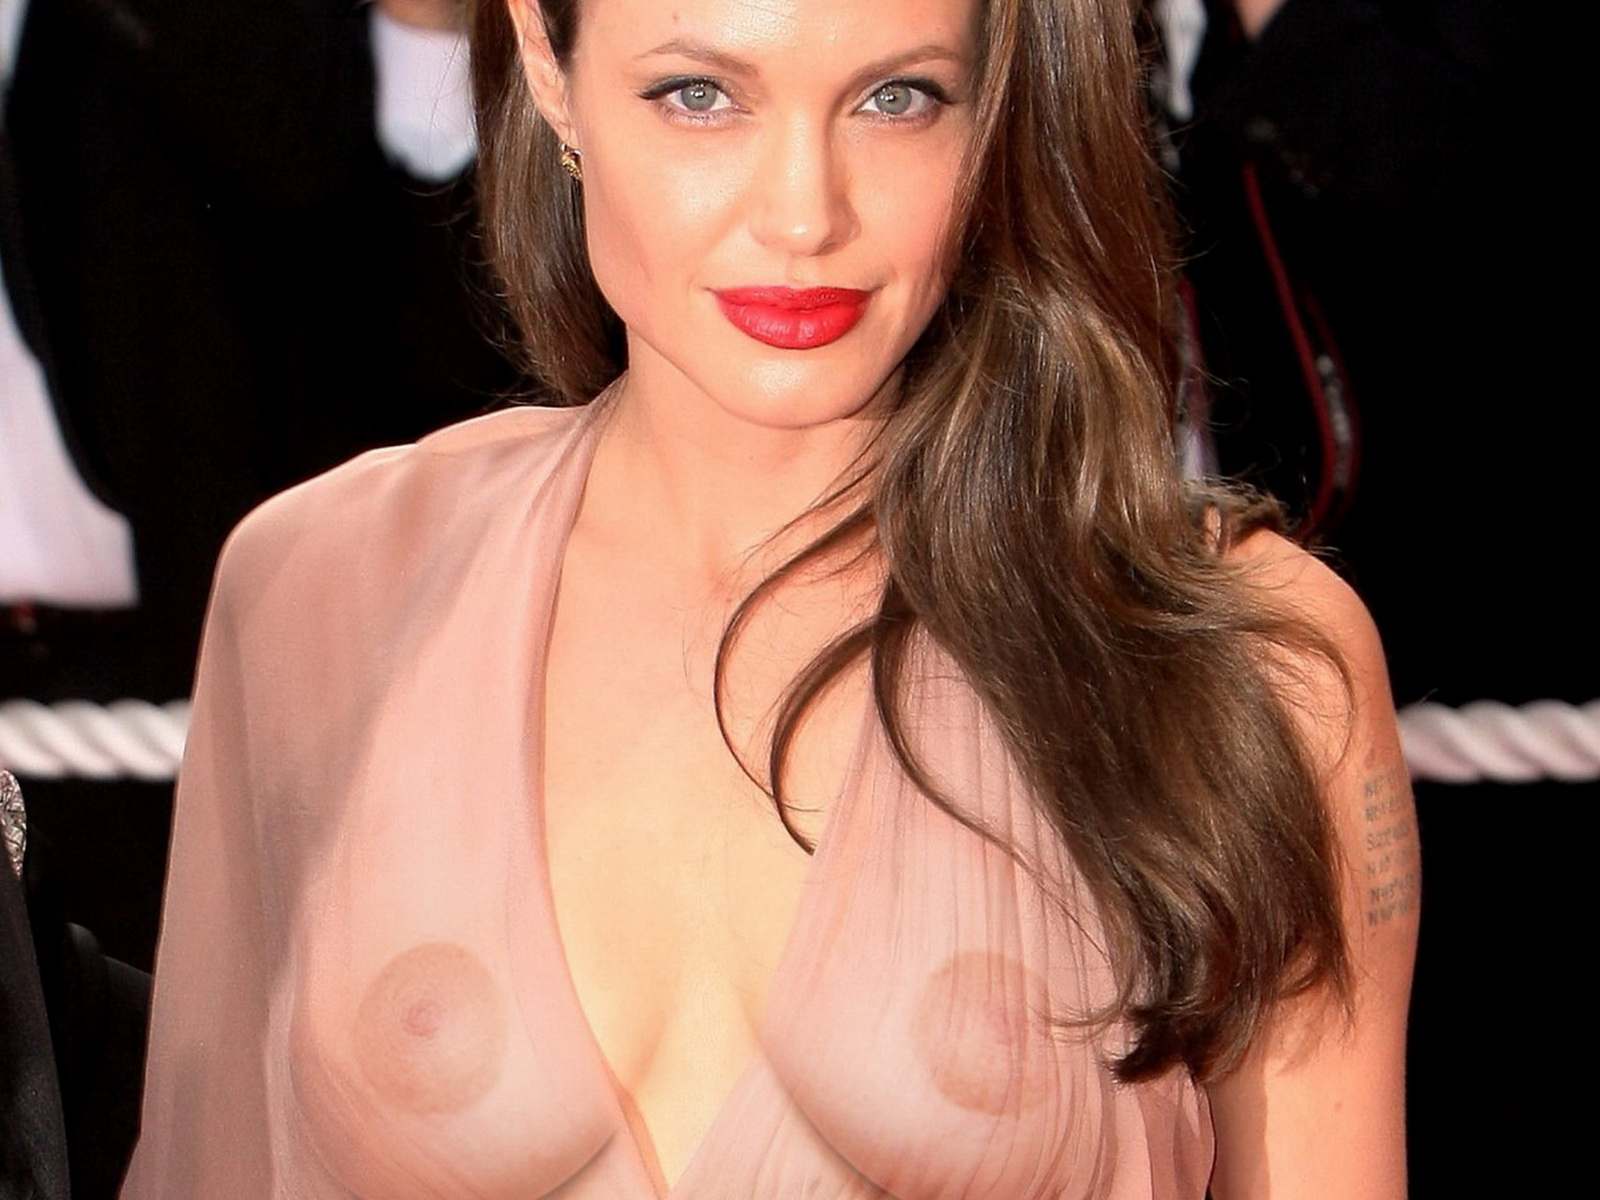 Angelina Jolie Tits angelina jolie nude pictures. rating = 8.02/10